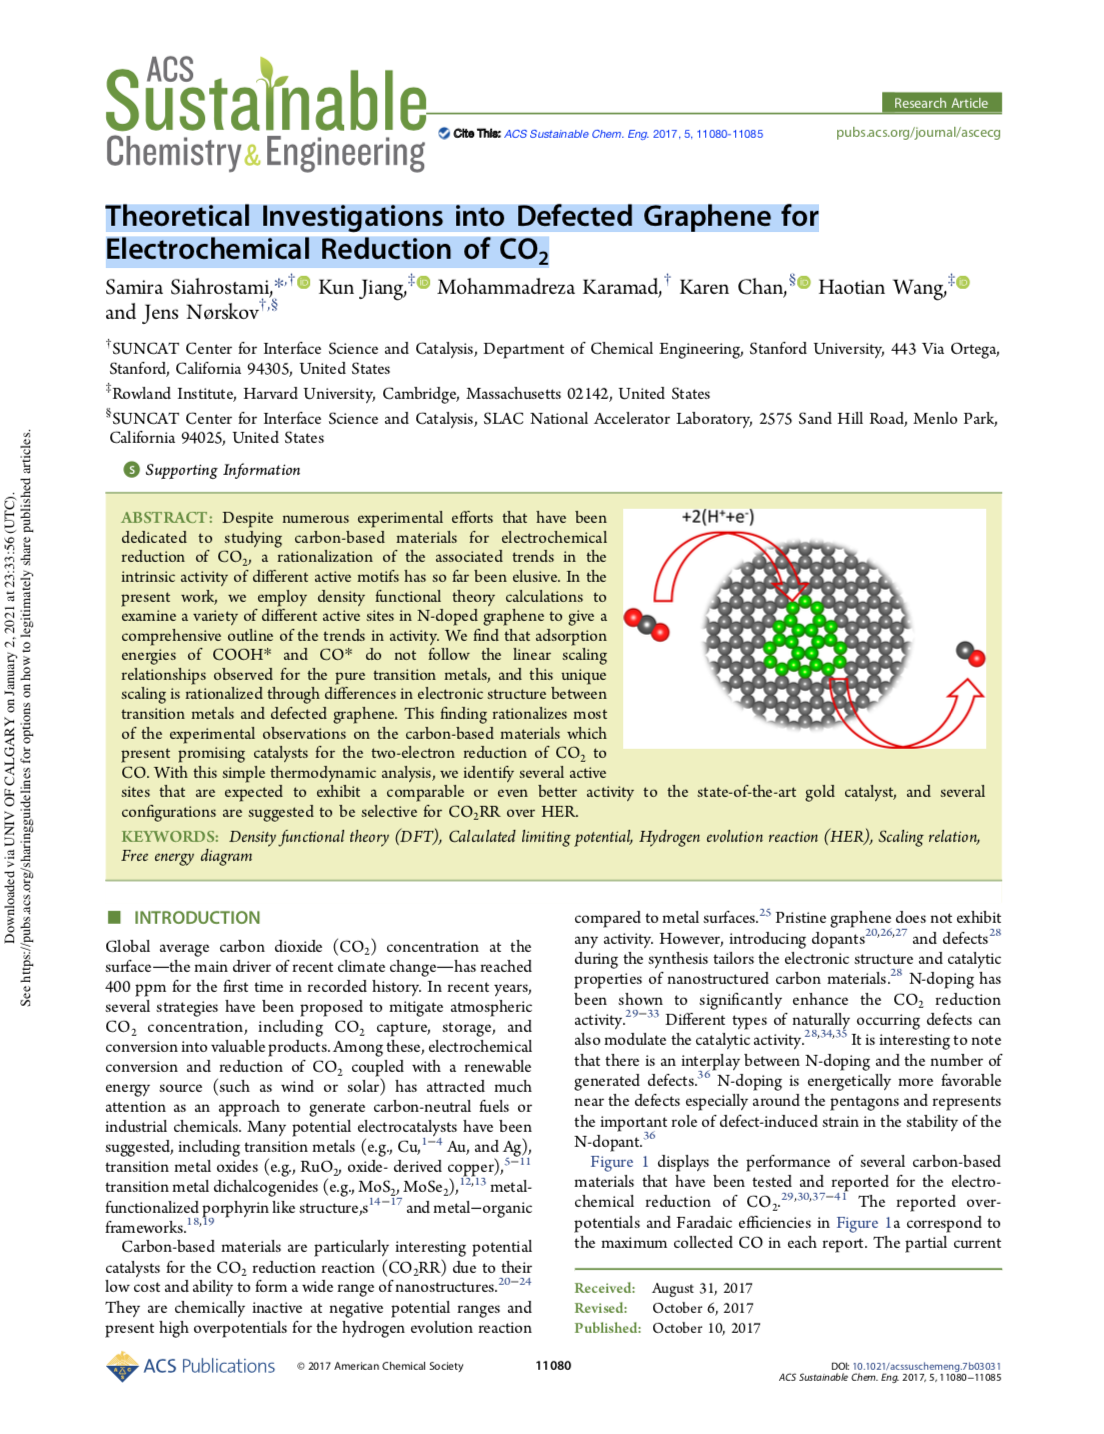 Theoretical Investigations into Defected Graphene for Electrochemical Reduction of CO2